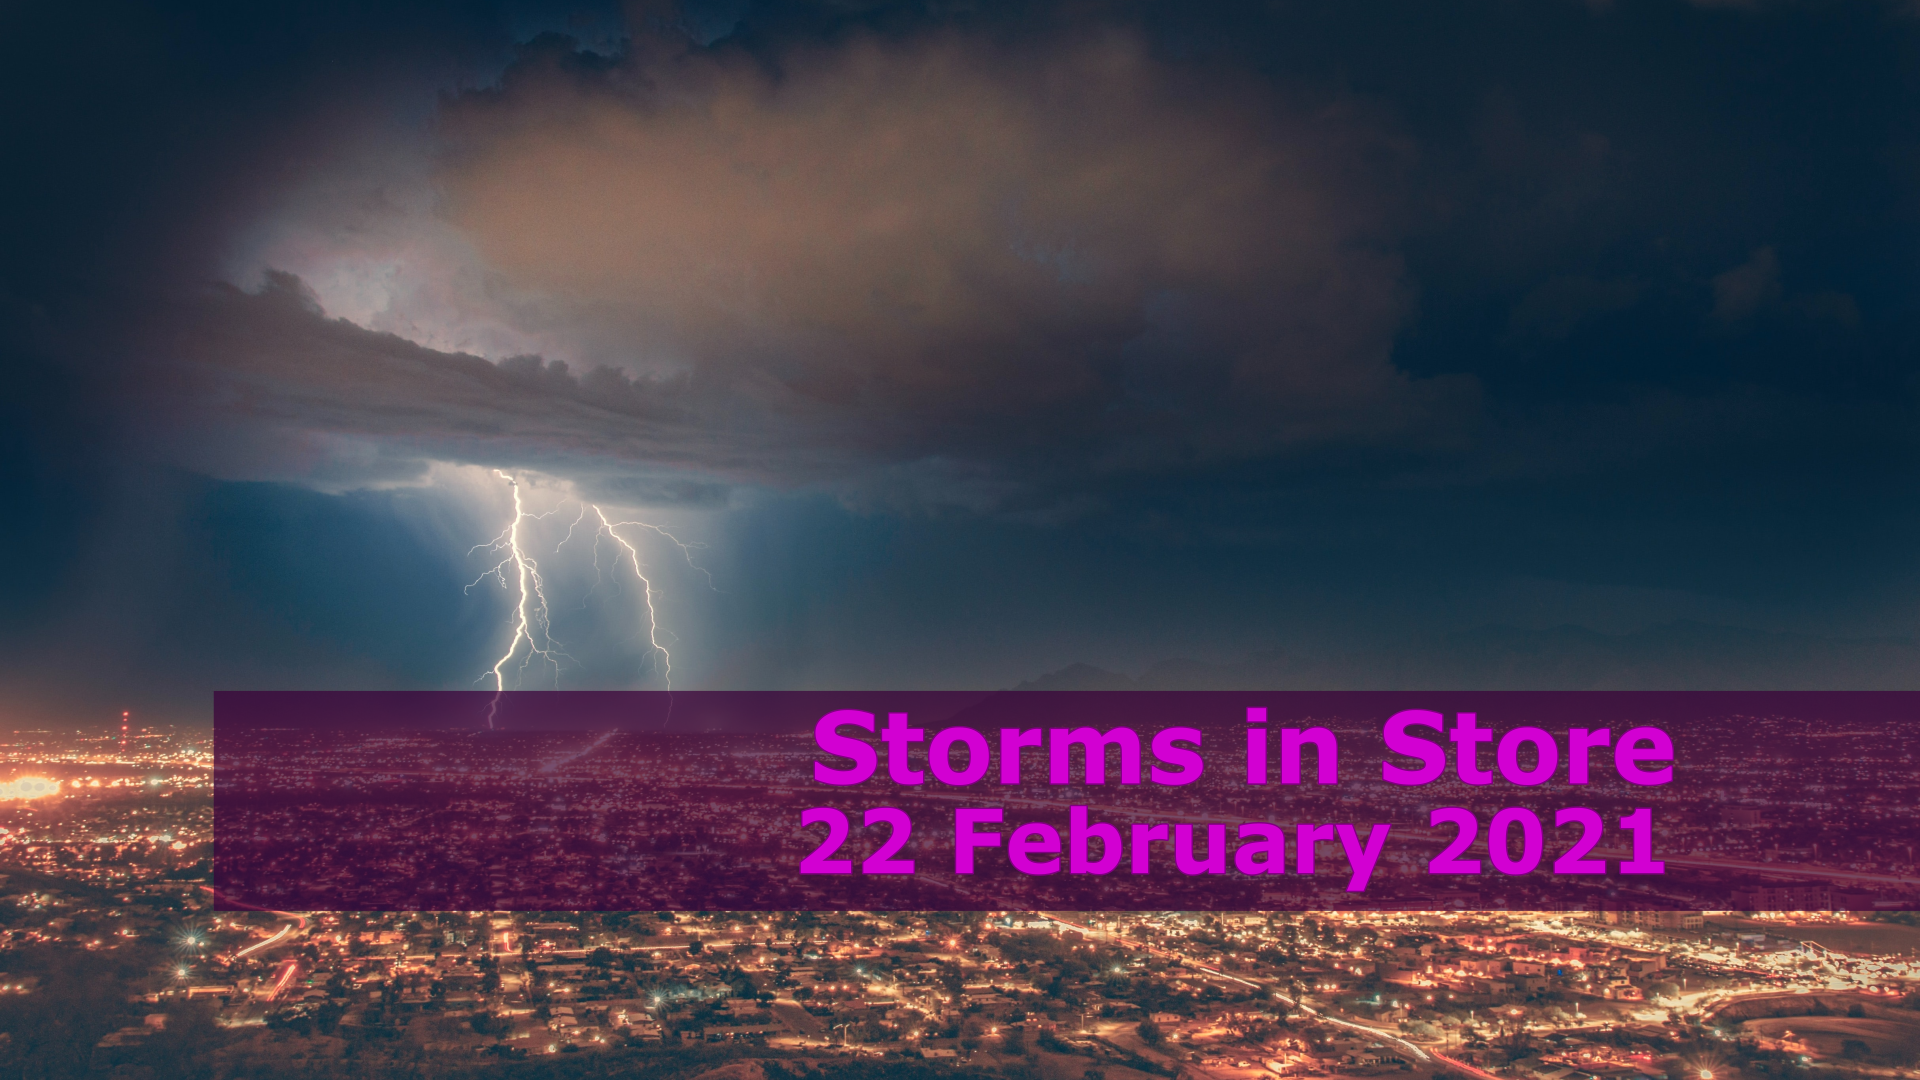 <span class='p-name'>Storms in Store — 22 February 2021 Devotional</span>